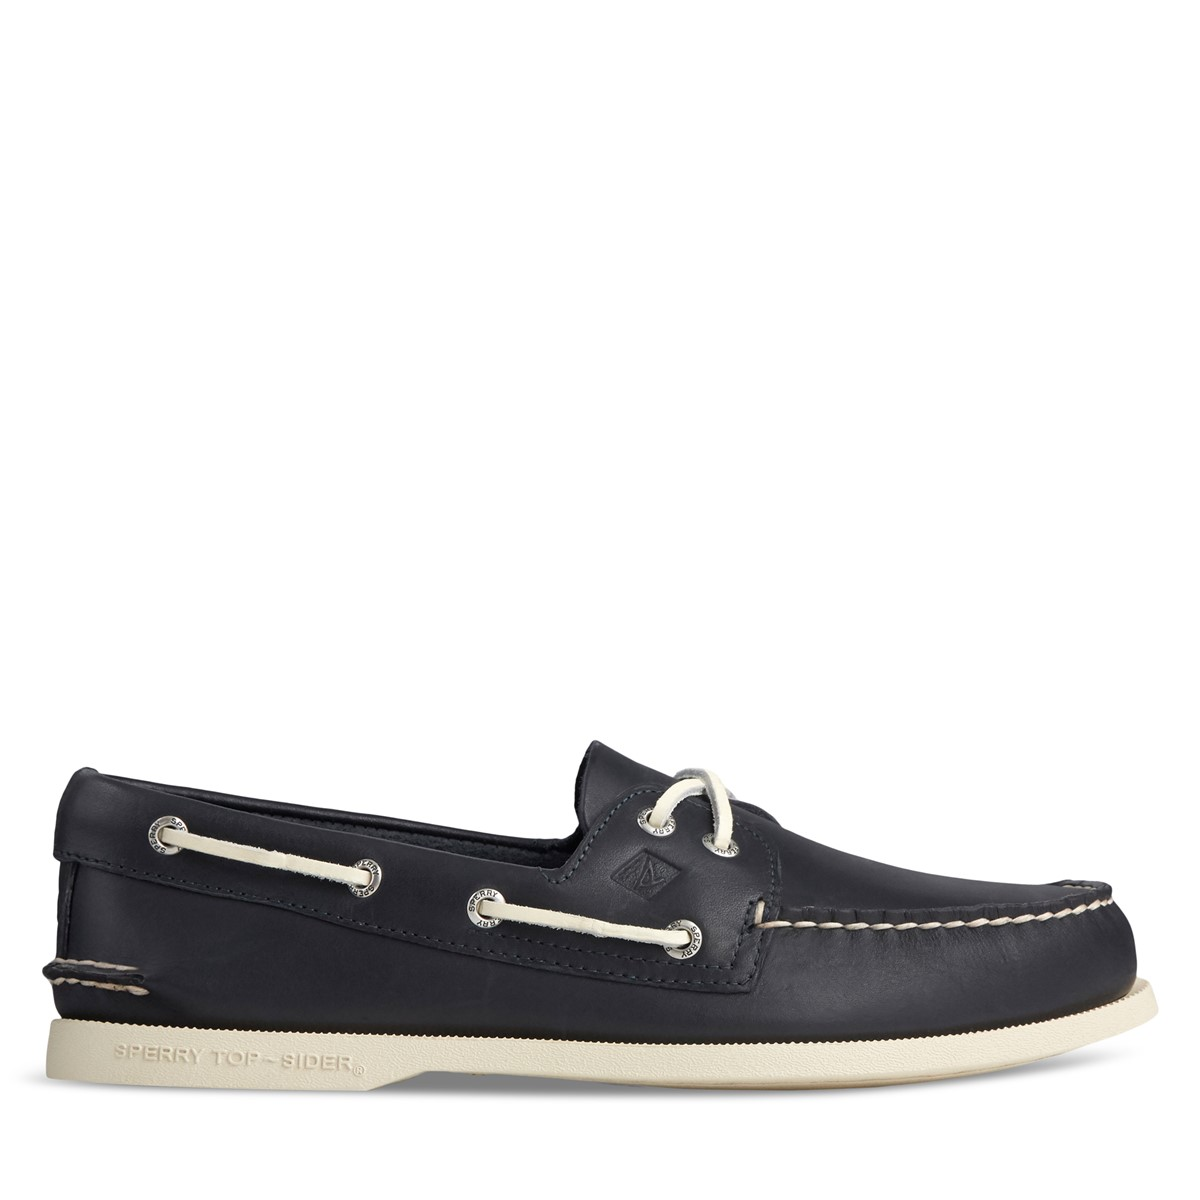 Men's 2 Eye Boat Shoes in Navy Blue